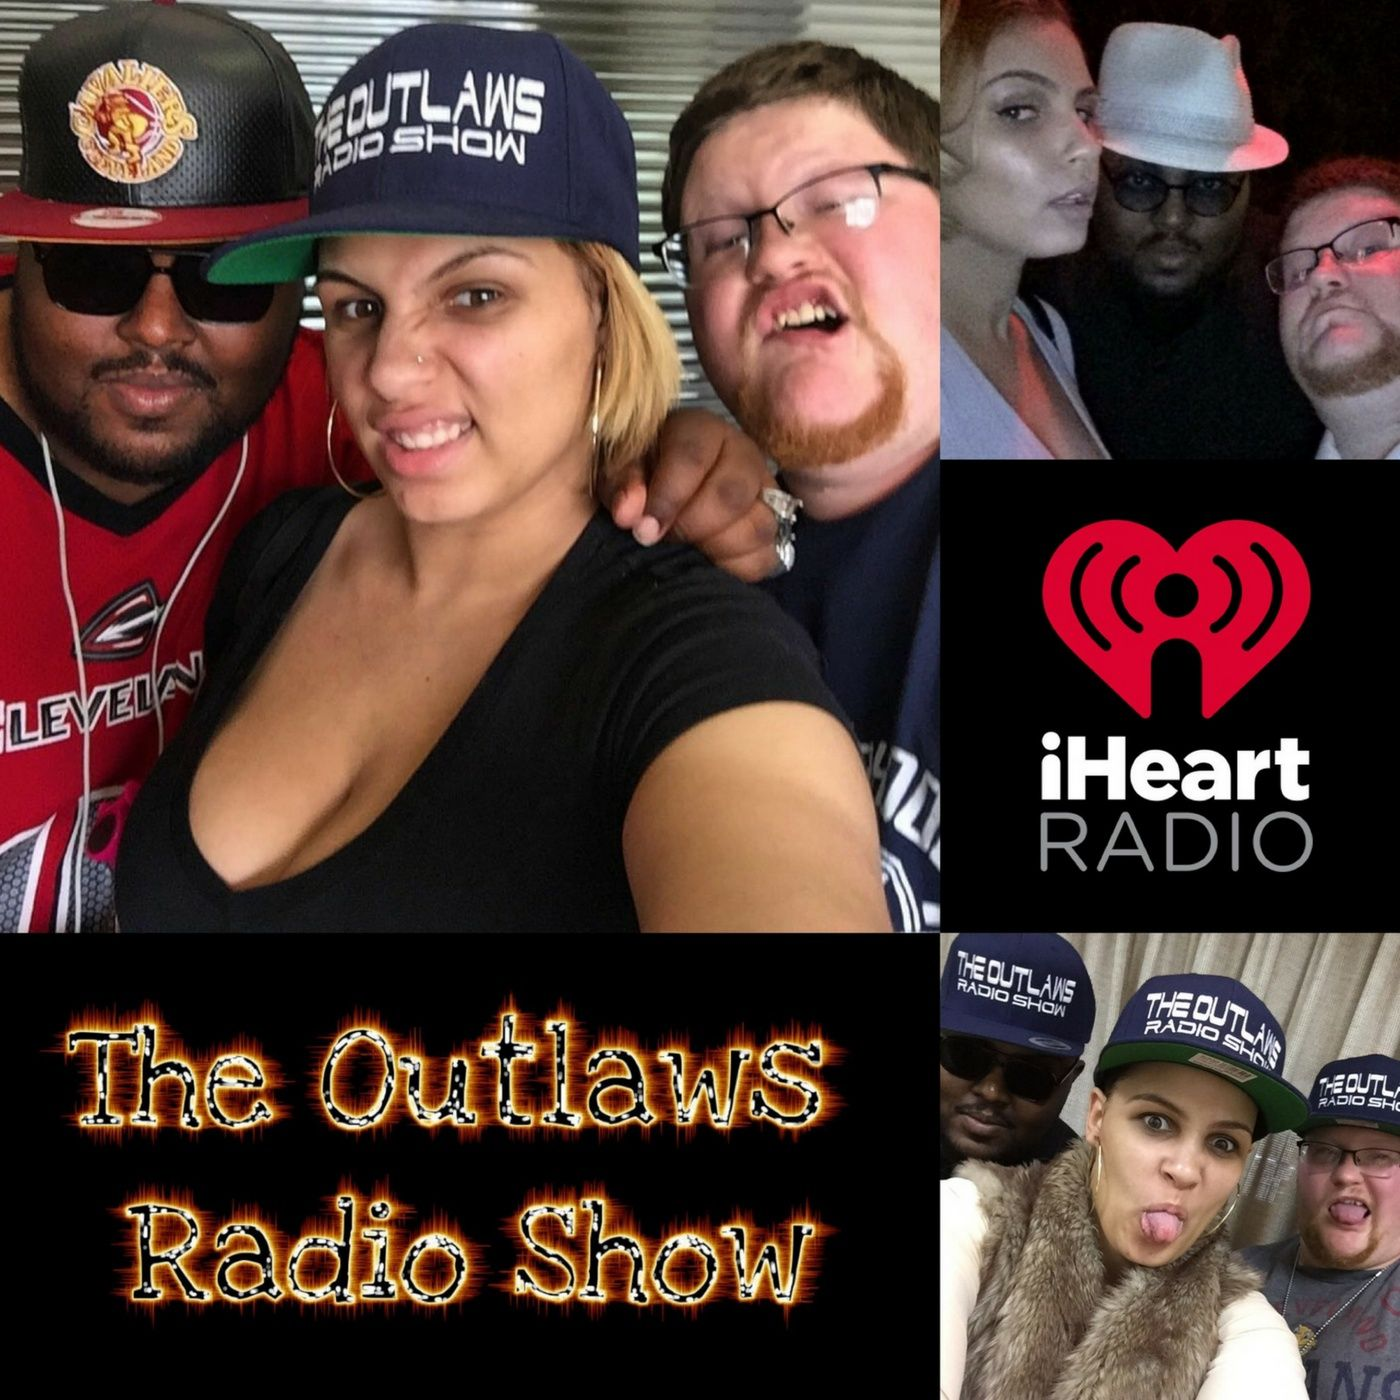 """Ep. 75 - Keith Griffin interview, """"What Irks My Nerves"""" and more"""